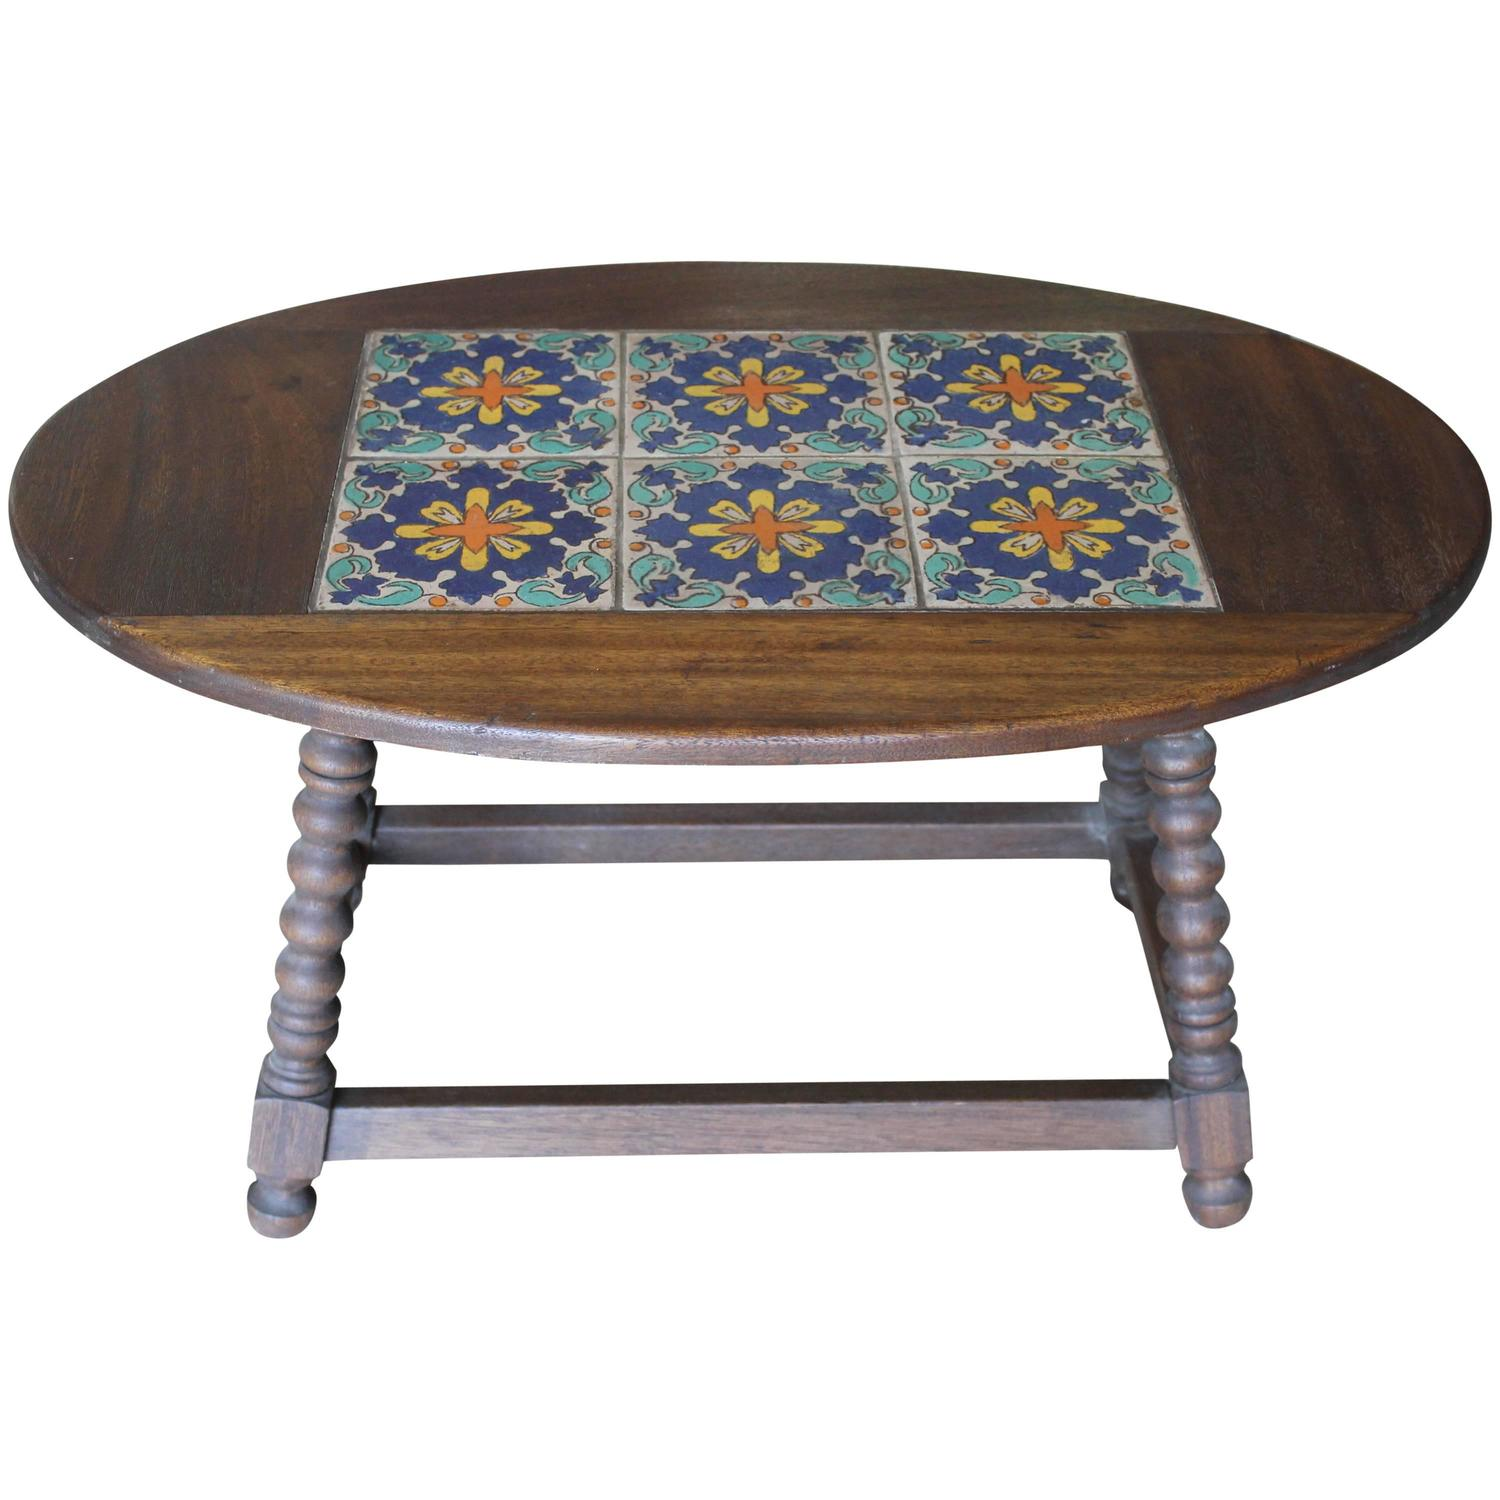 Monterey Style Tile Coffee Table For Sale At 1stdibs